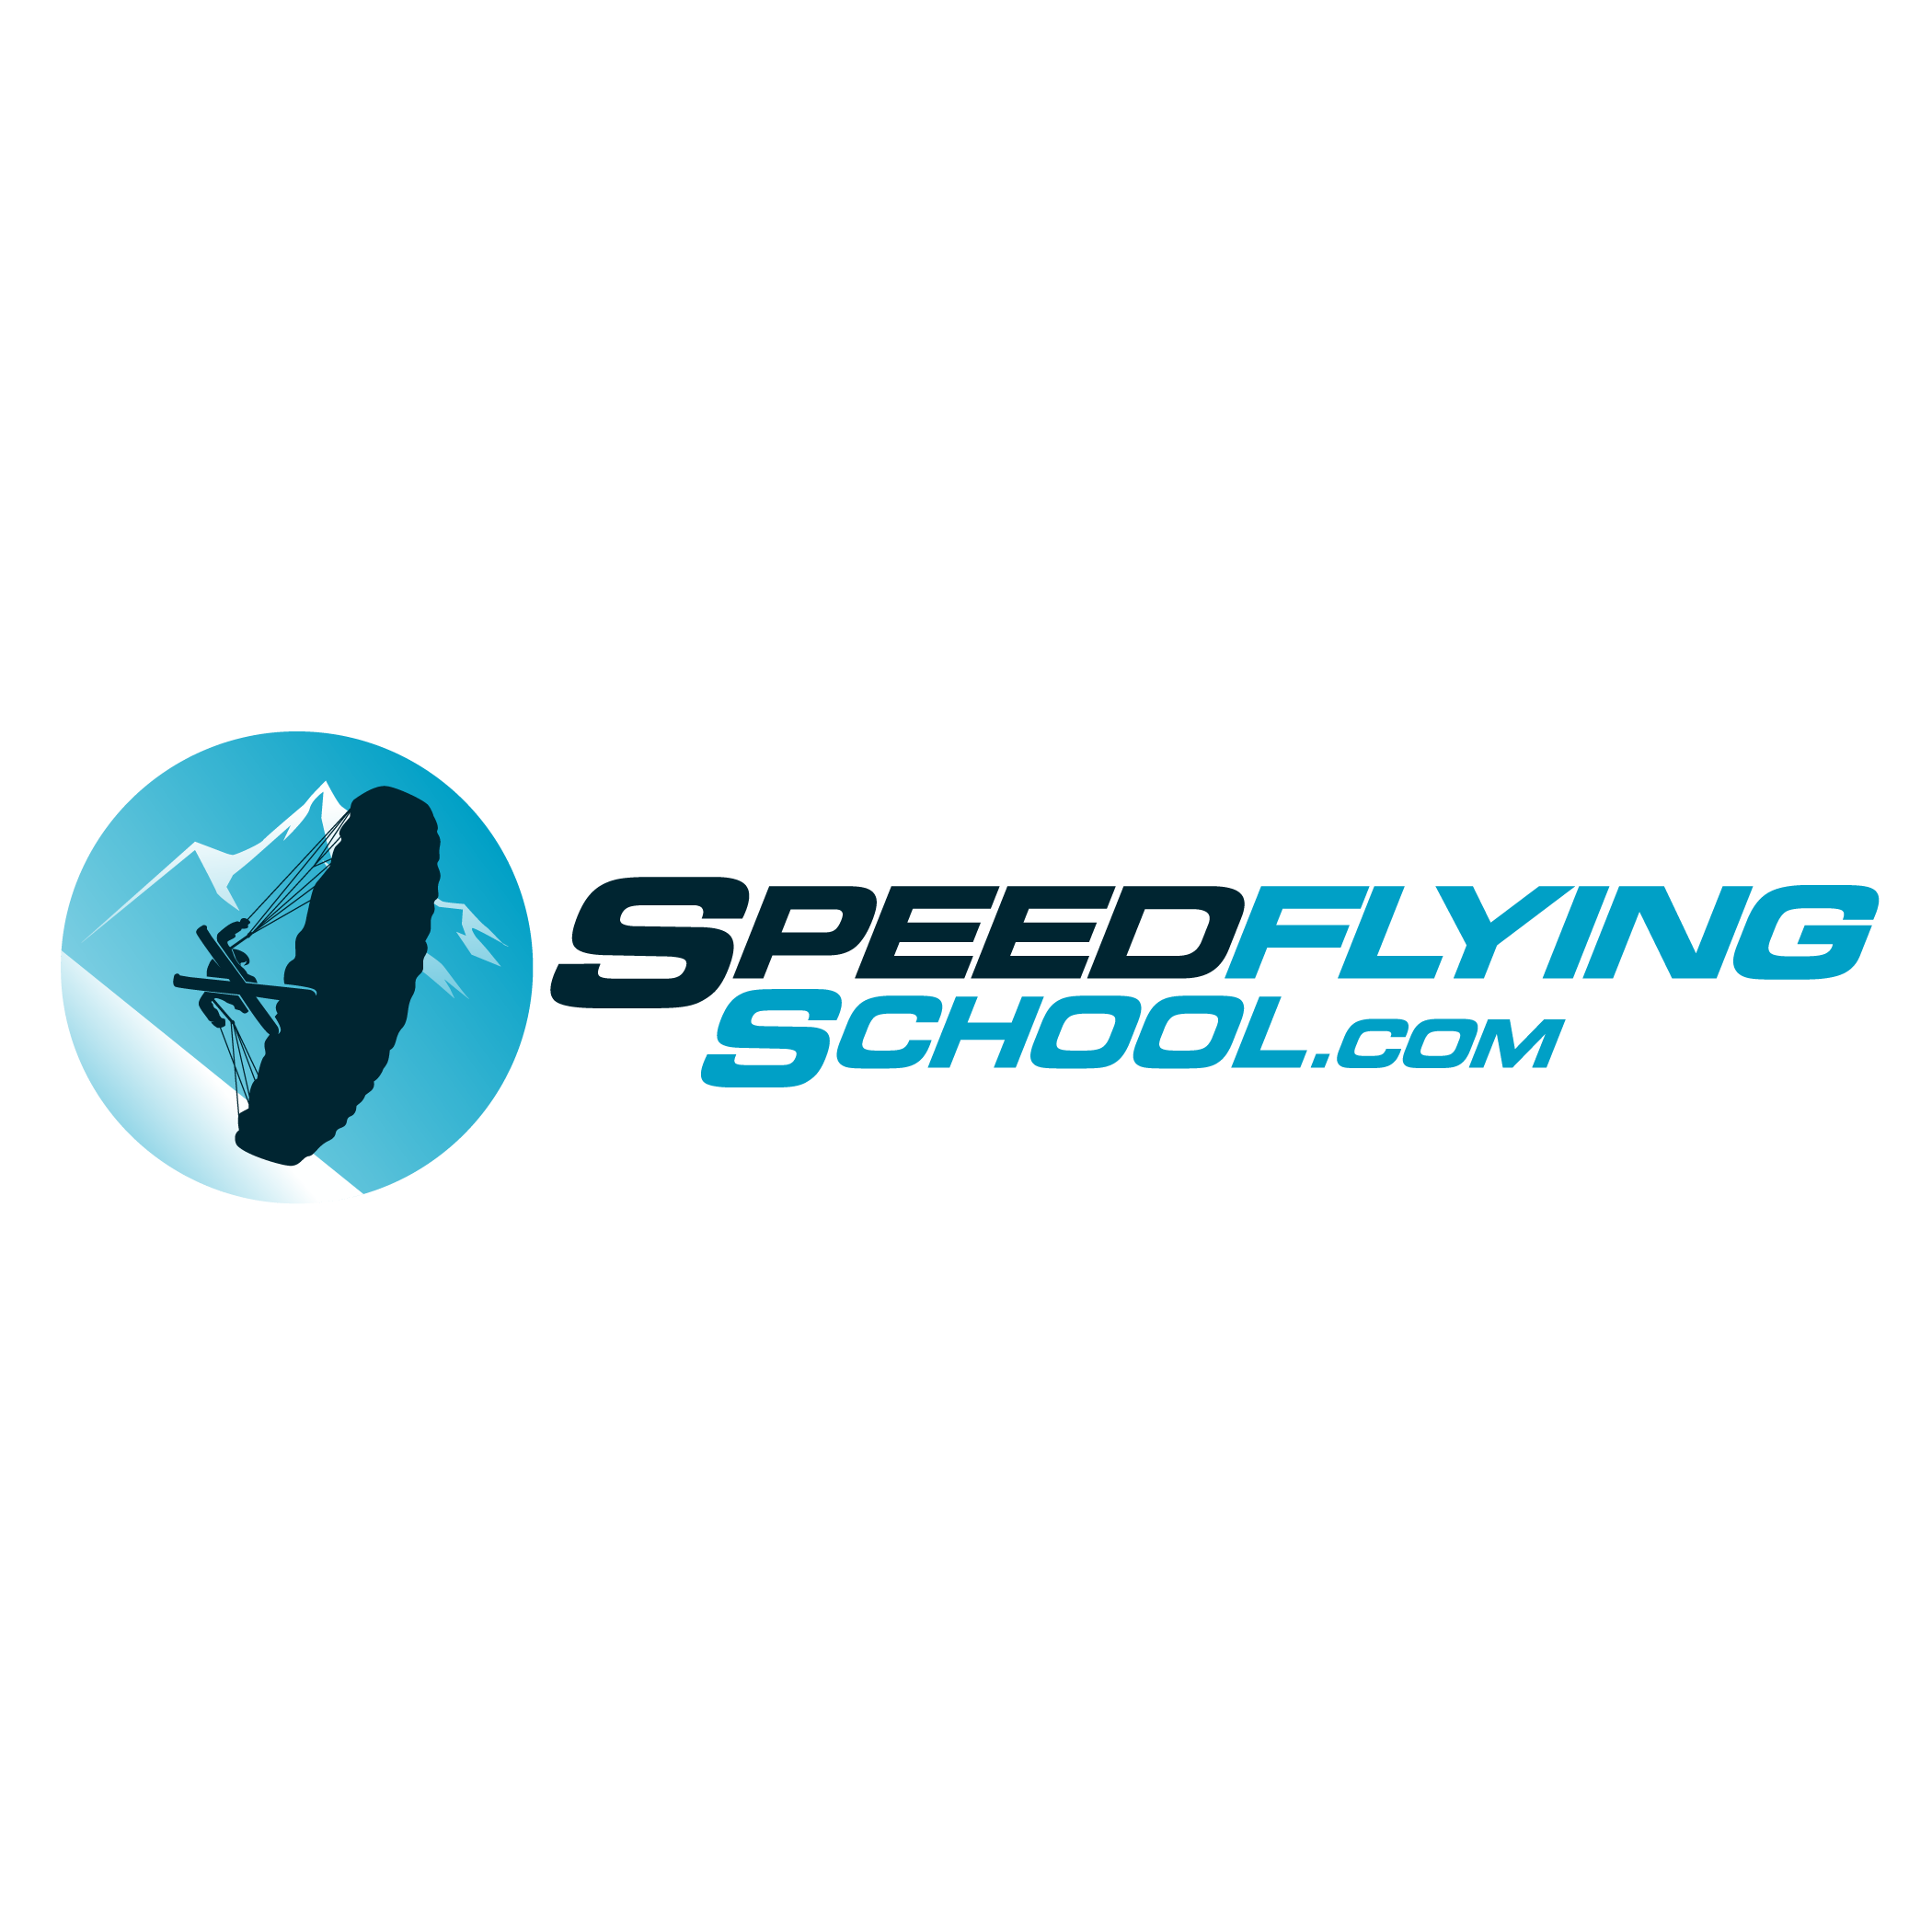 Speedflying School